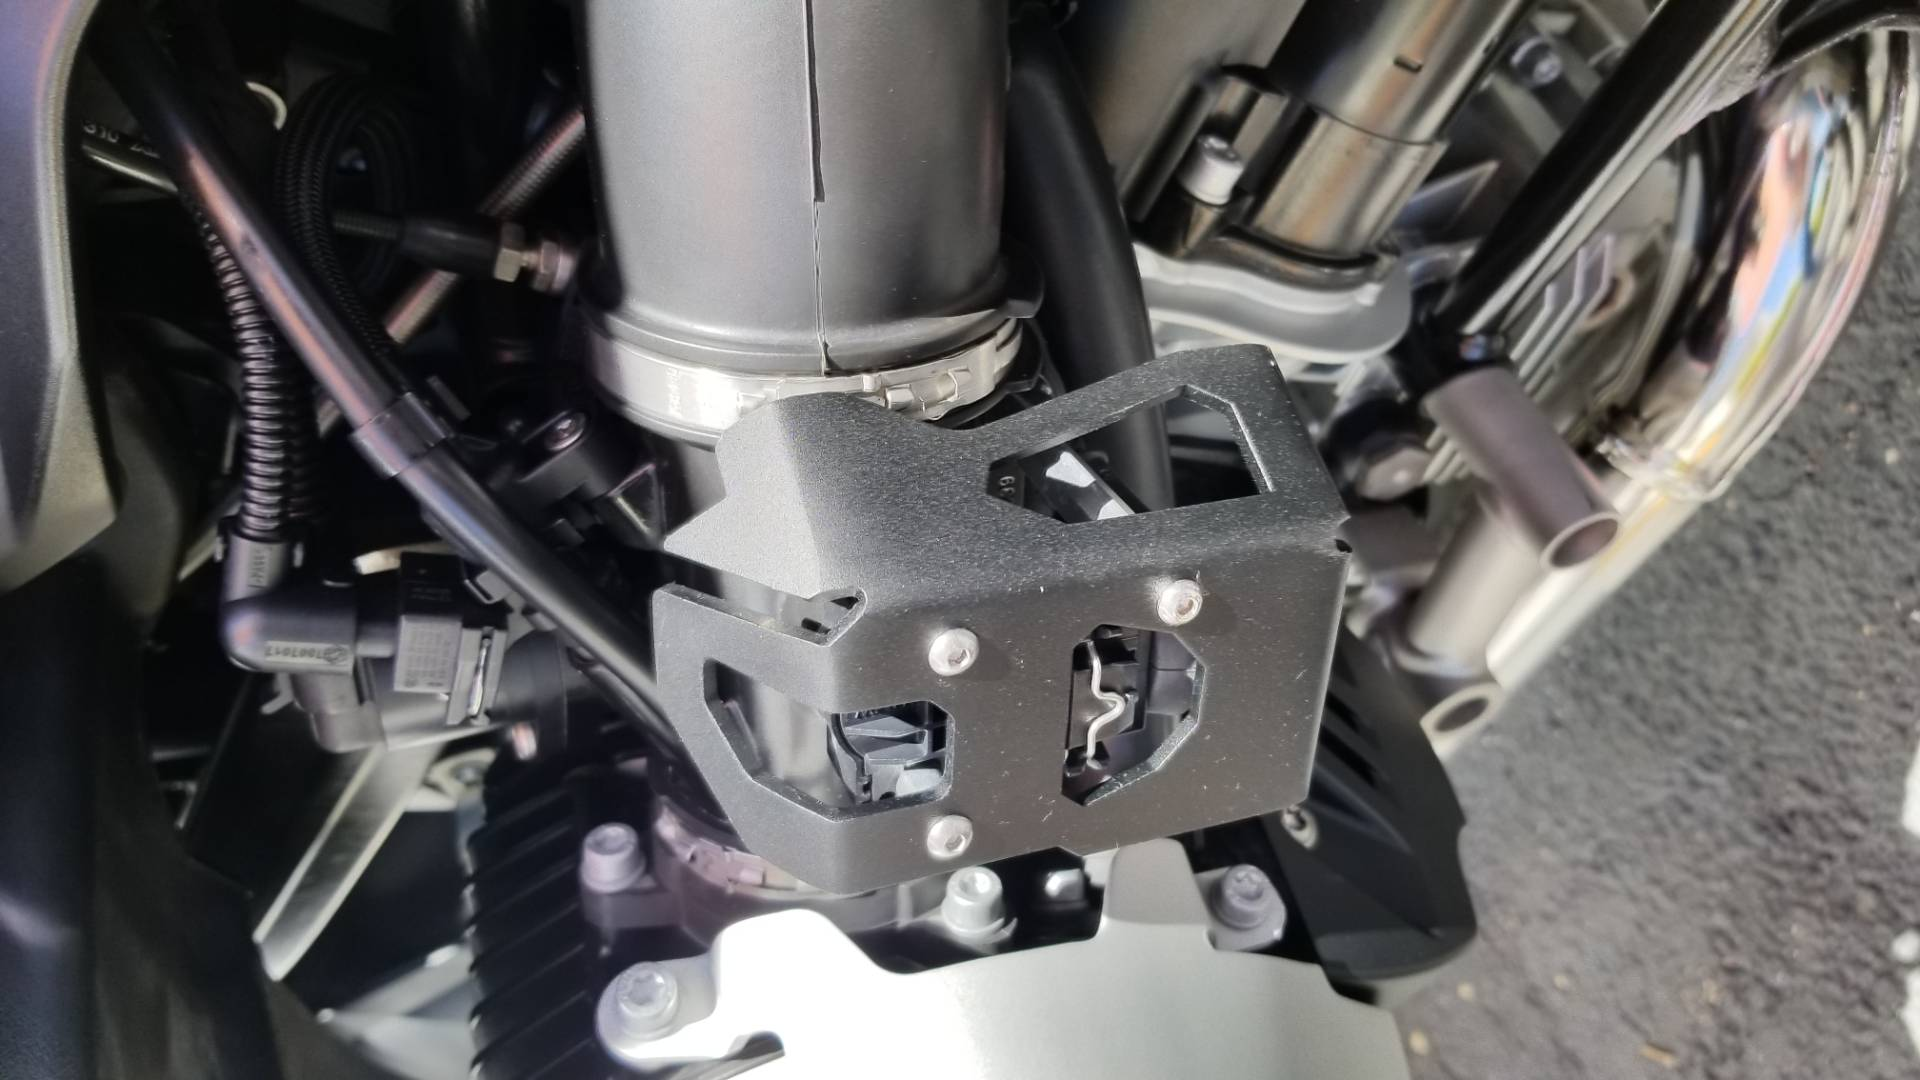 Used 2011 BMW R 1200 GSA For Sale, Pre owned BMW R 1200GSA For Sale, BMW Motorcycle R1200GSA, BMW Motorcycles of Miami, Motorcycles of Miami, Motorcycles Miami - Photo 27